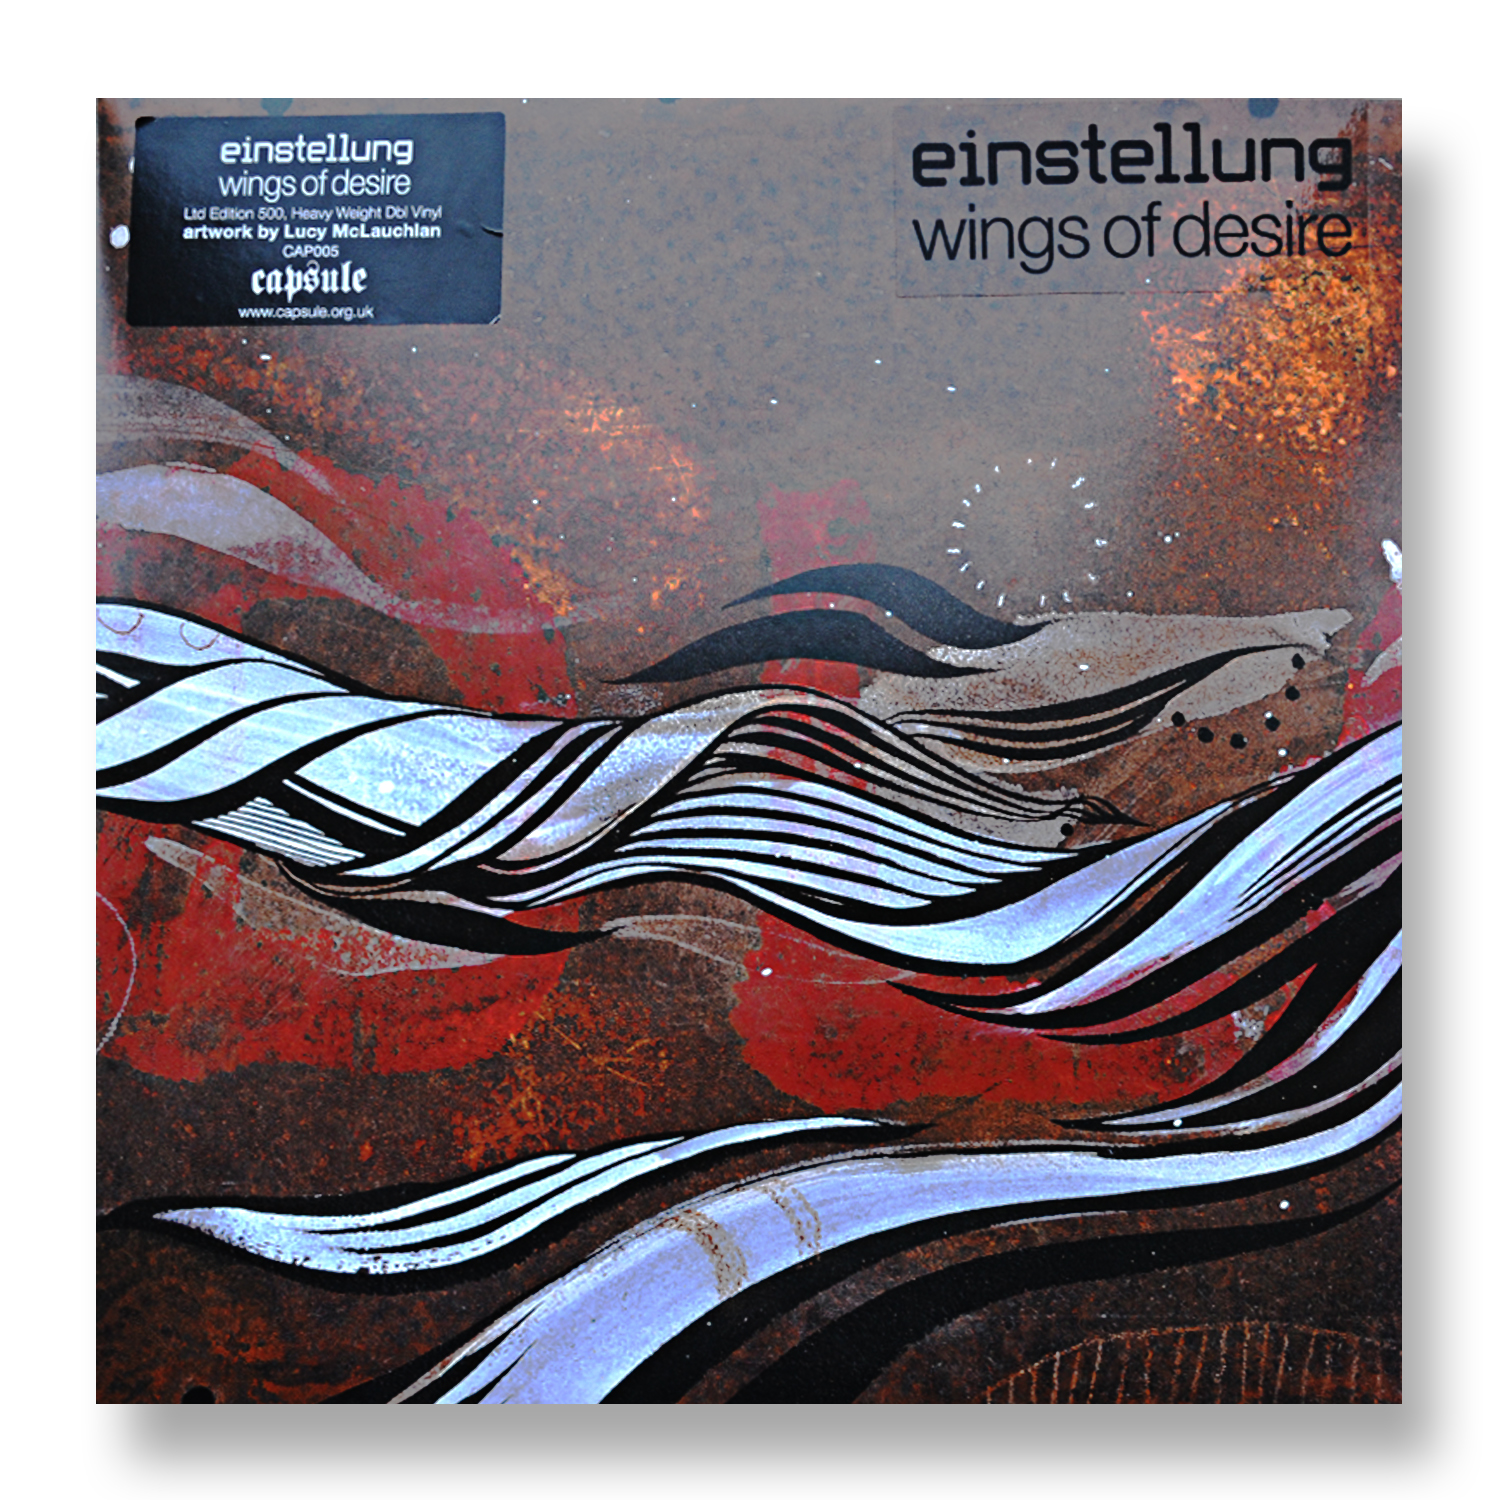 Einstellung 'Wings of Desire' - vinyl